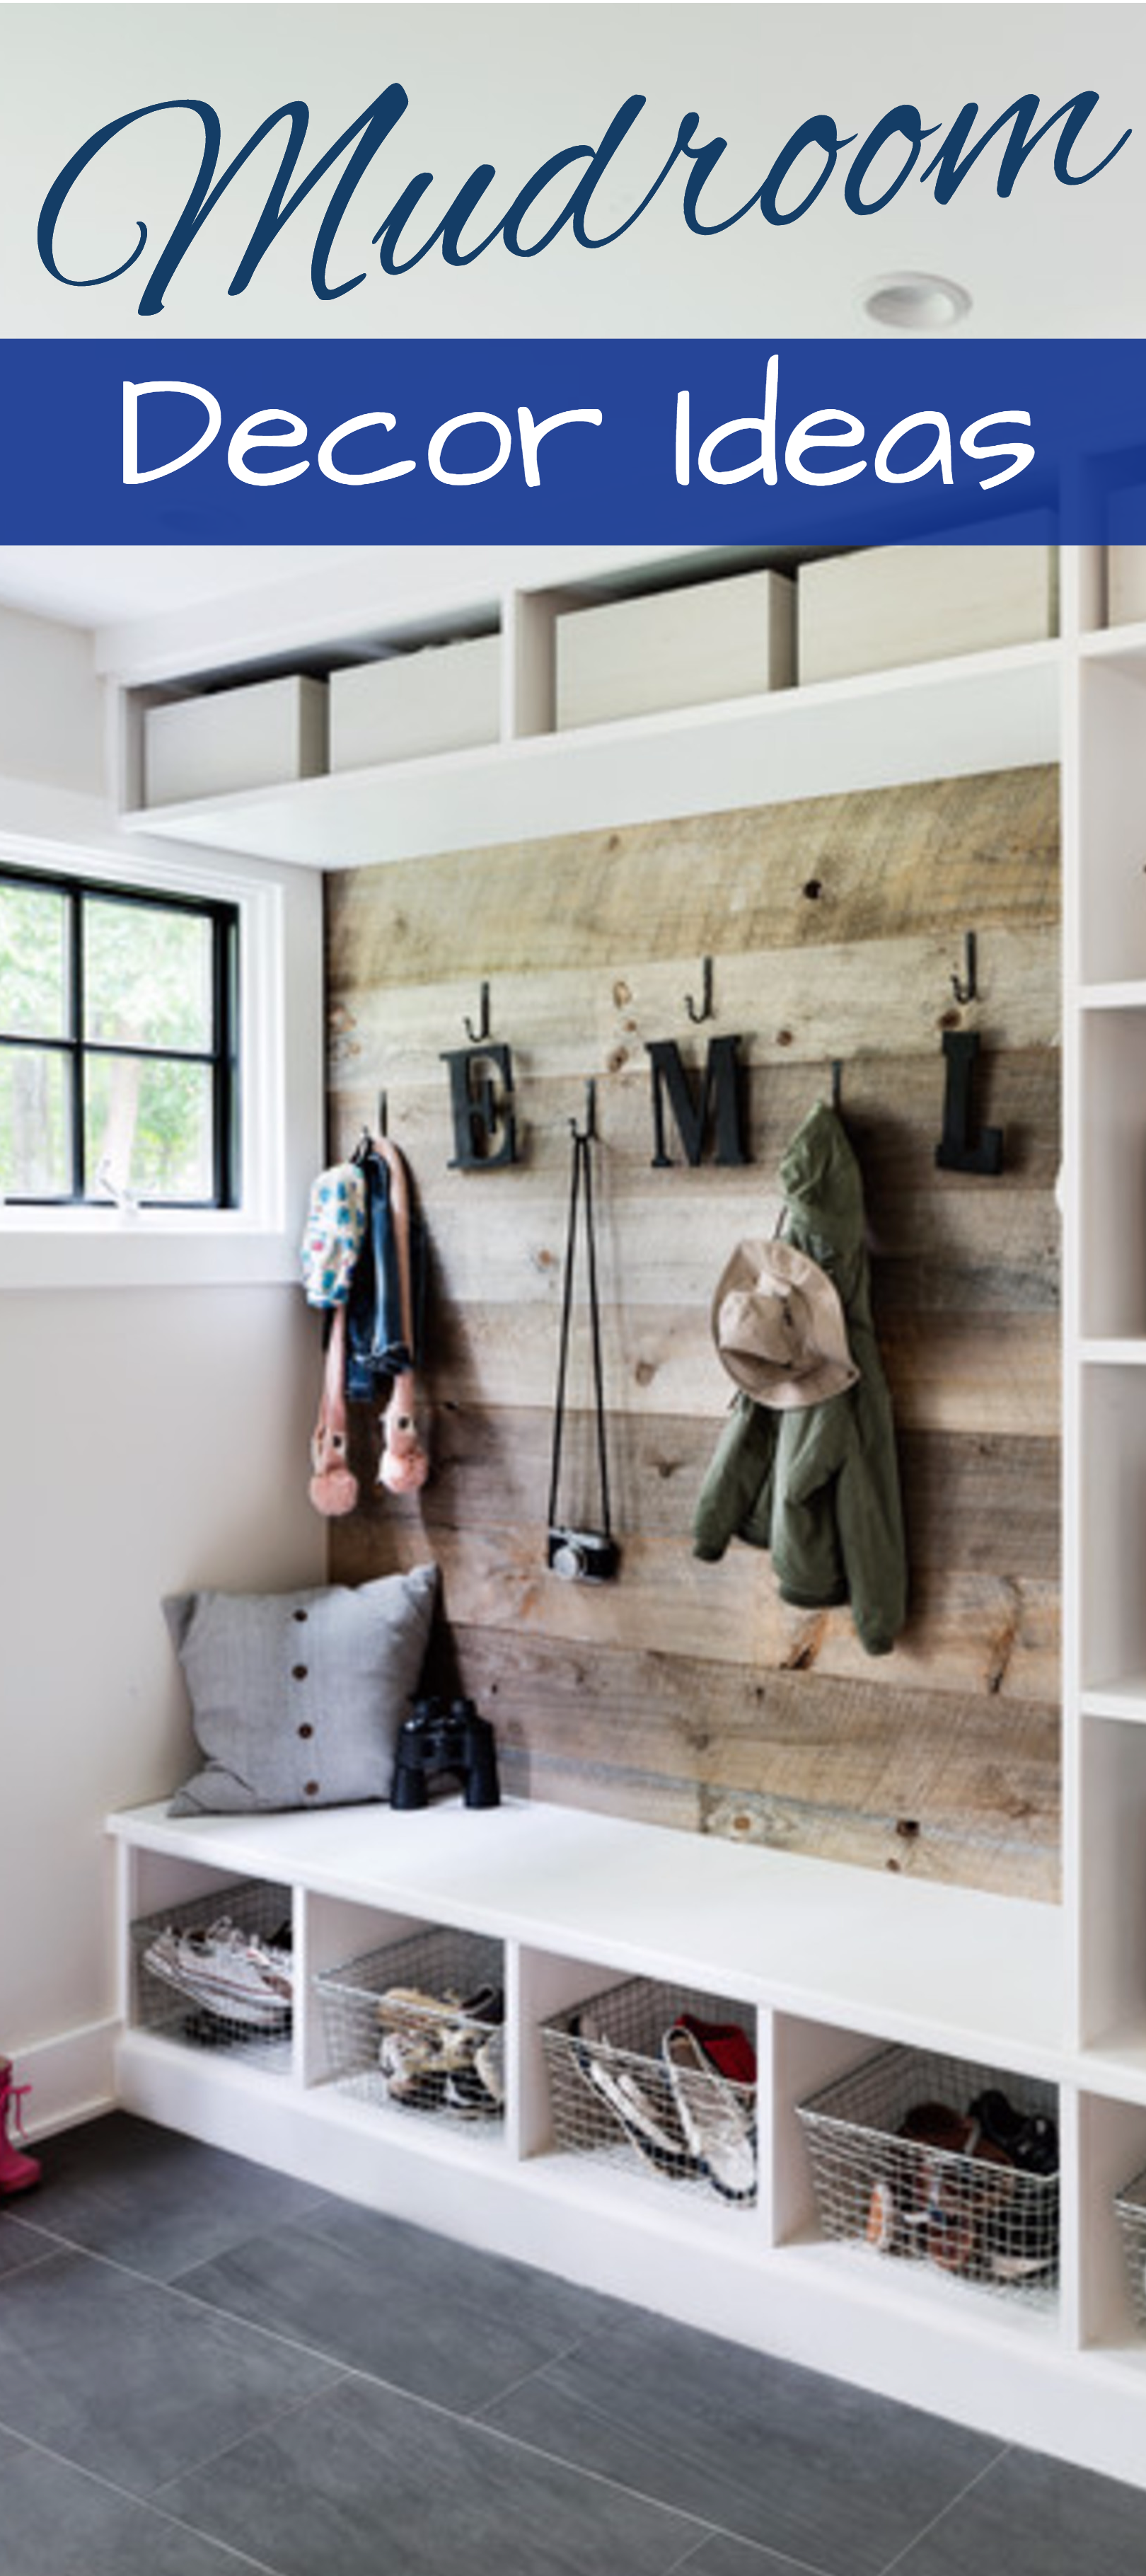 DIY Farmhouse Rustic Mudroom Decor Ideas We Love Part 62